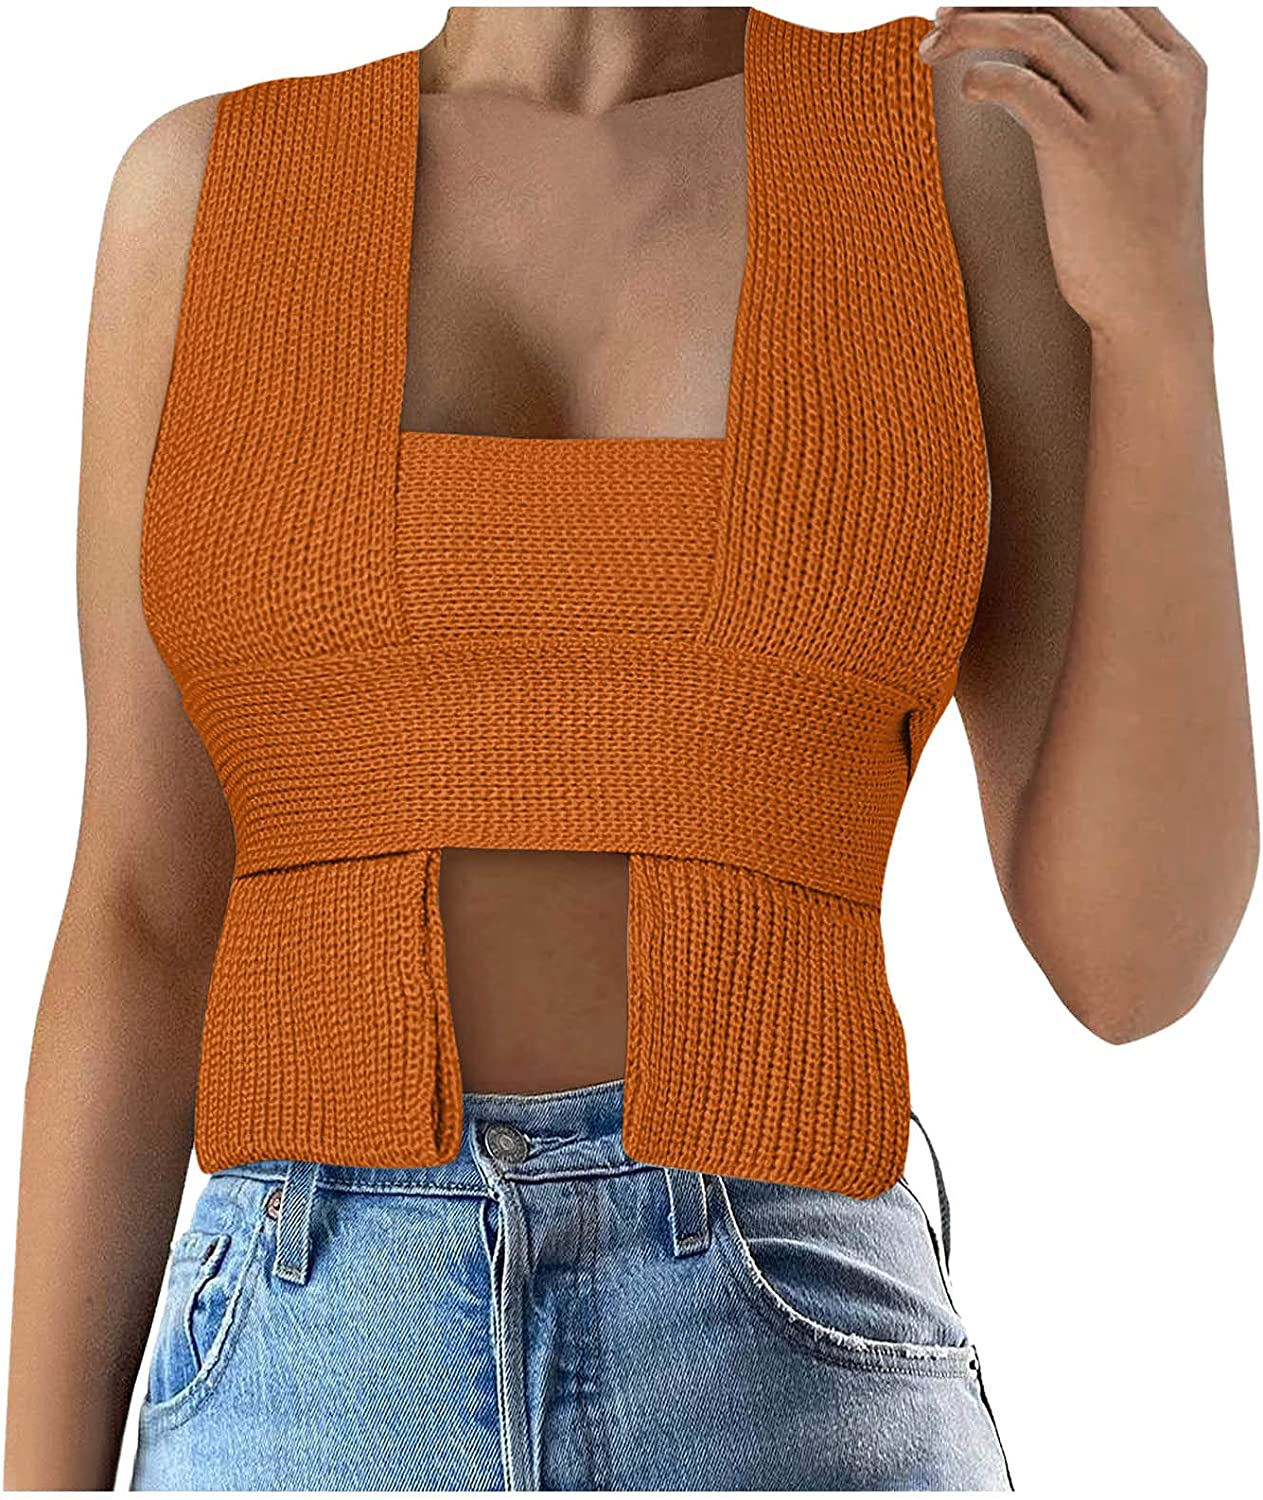 Women's Irregular Crop Sweater Top Sleeveless Tie Strappy Backless Knitted V Neck Casual Jumper Crop Tank Cami Vest Top